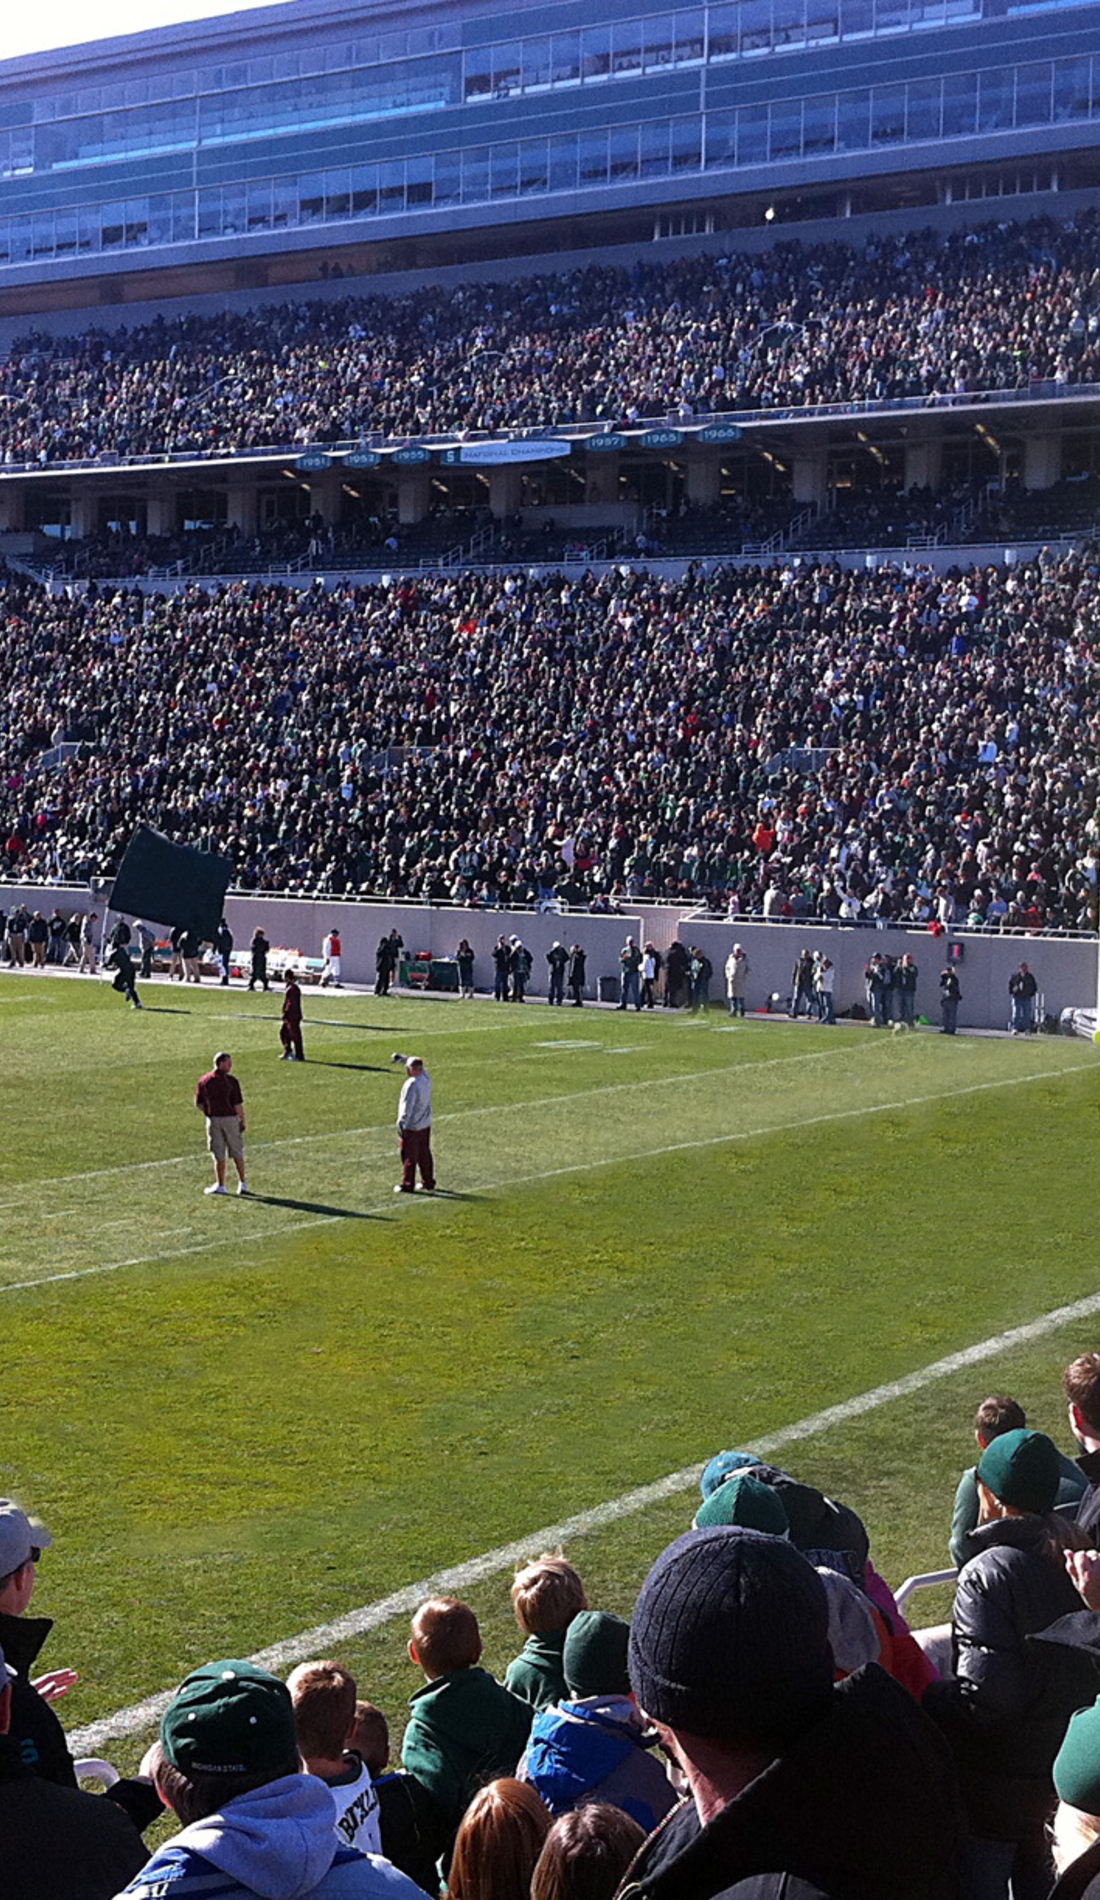 A Michigan State Spartans Football live event